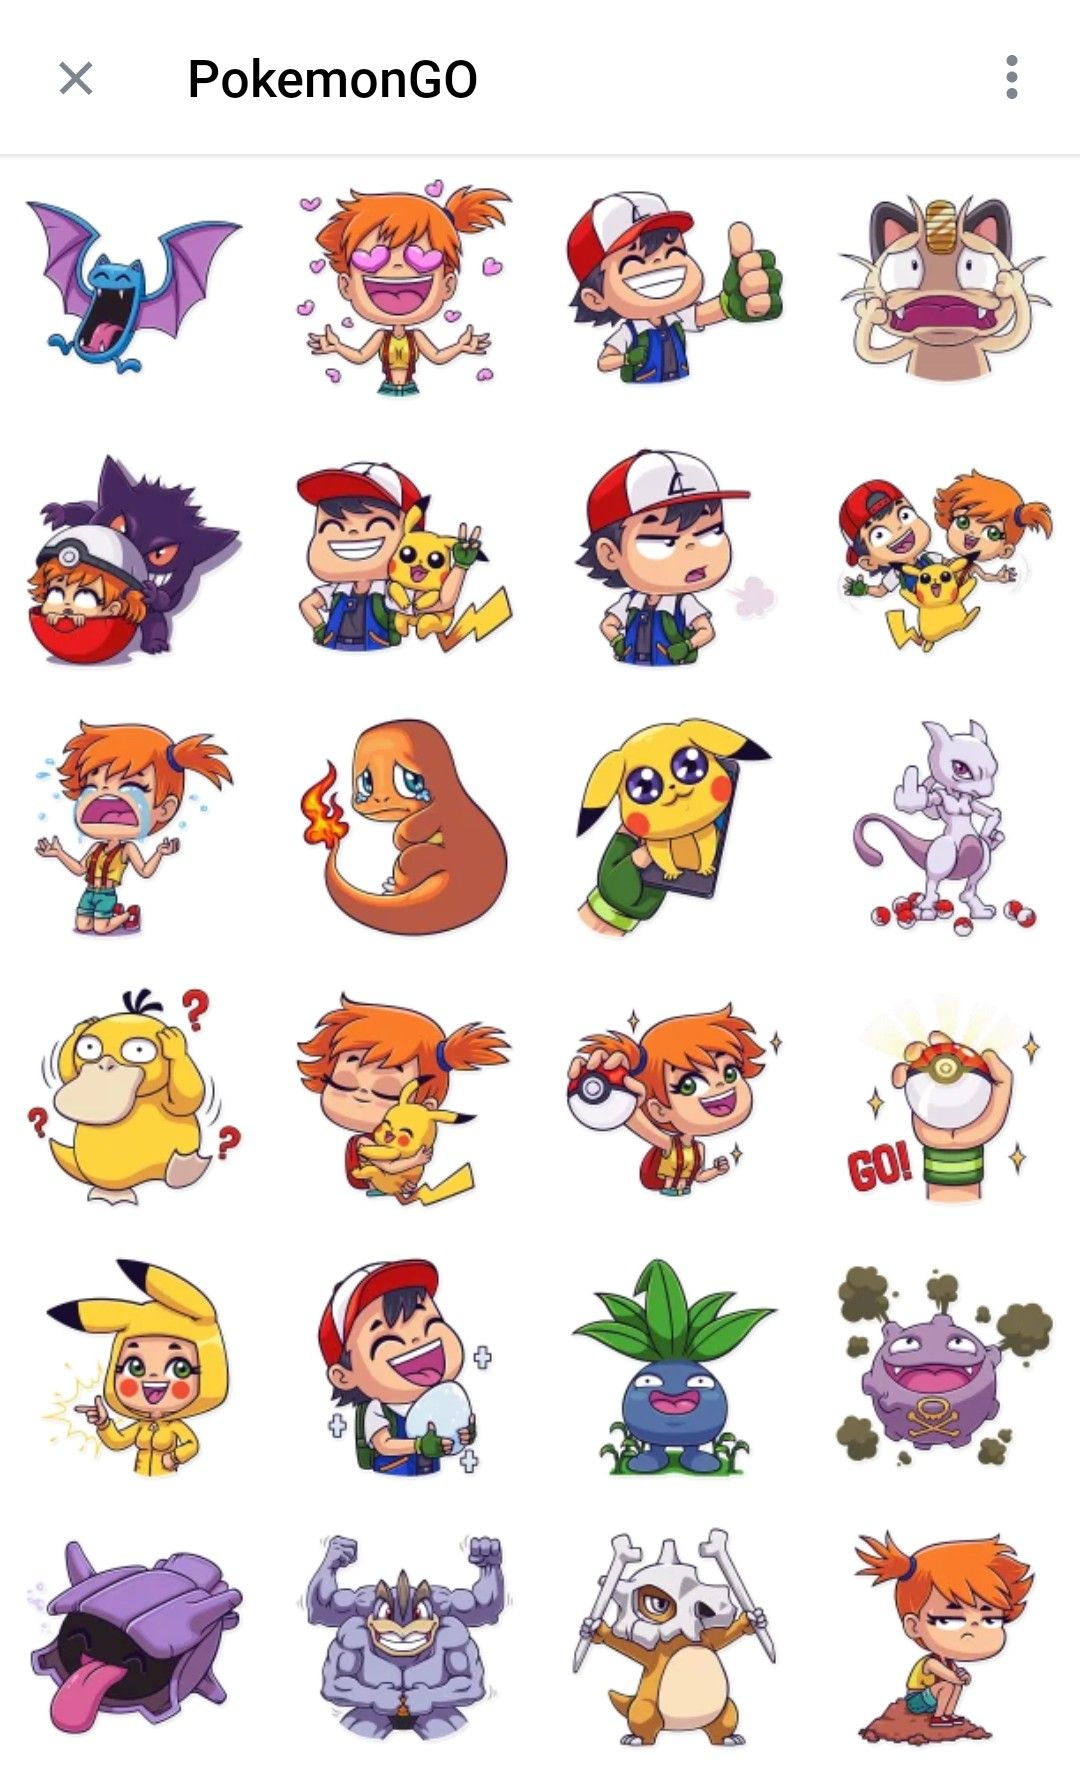 Pokemon Go Telegram Sticker Packs Telegram Stickers Pokemon Stickers Pokemon